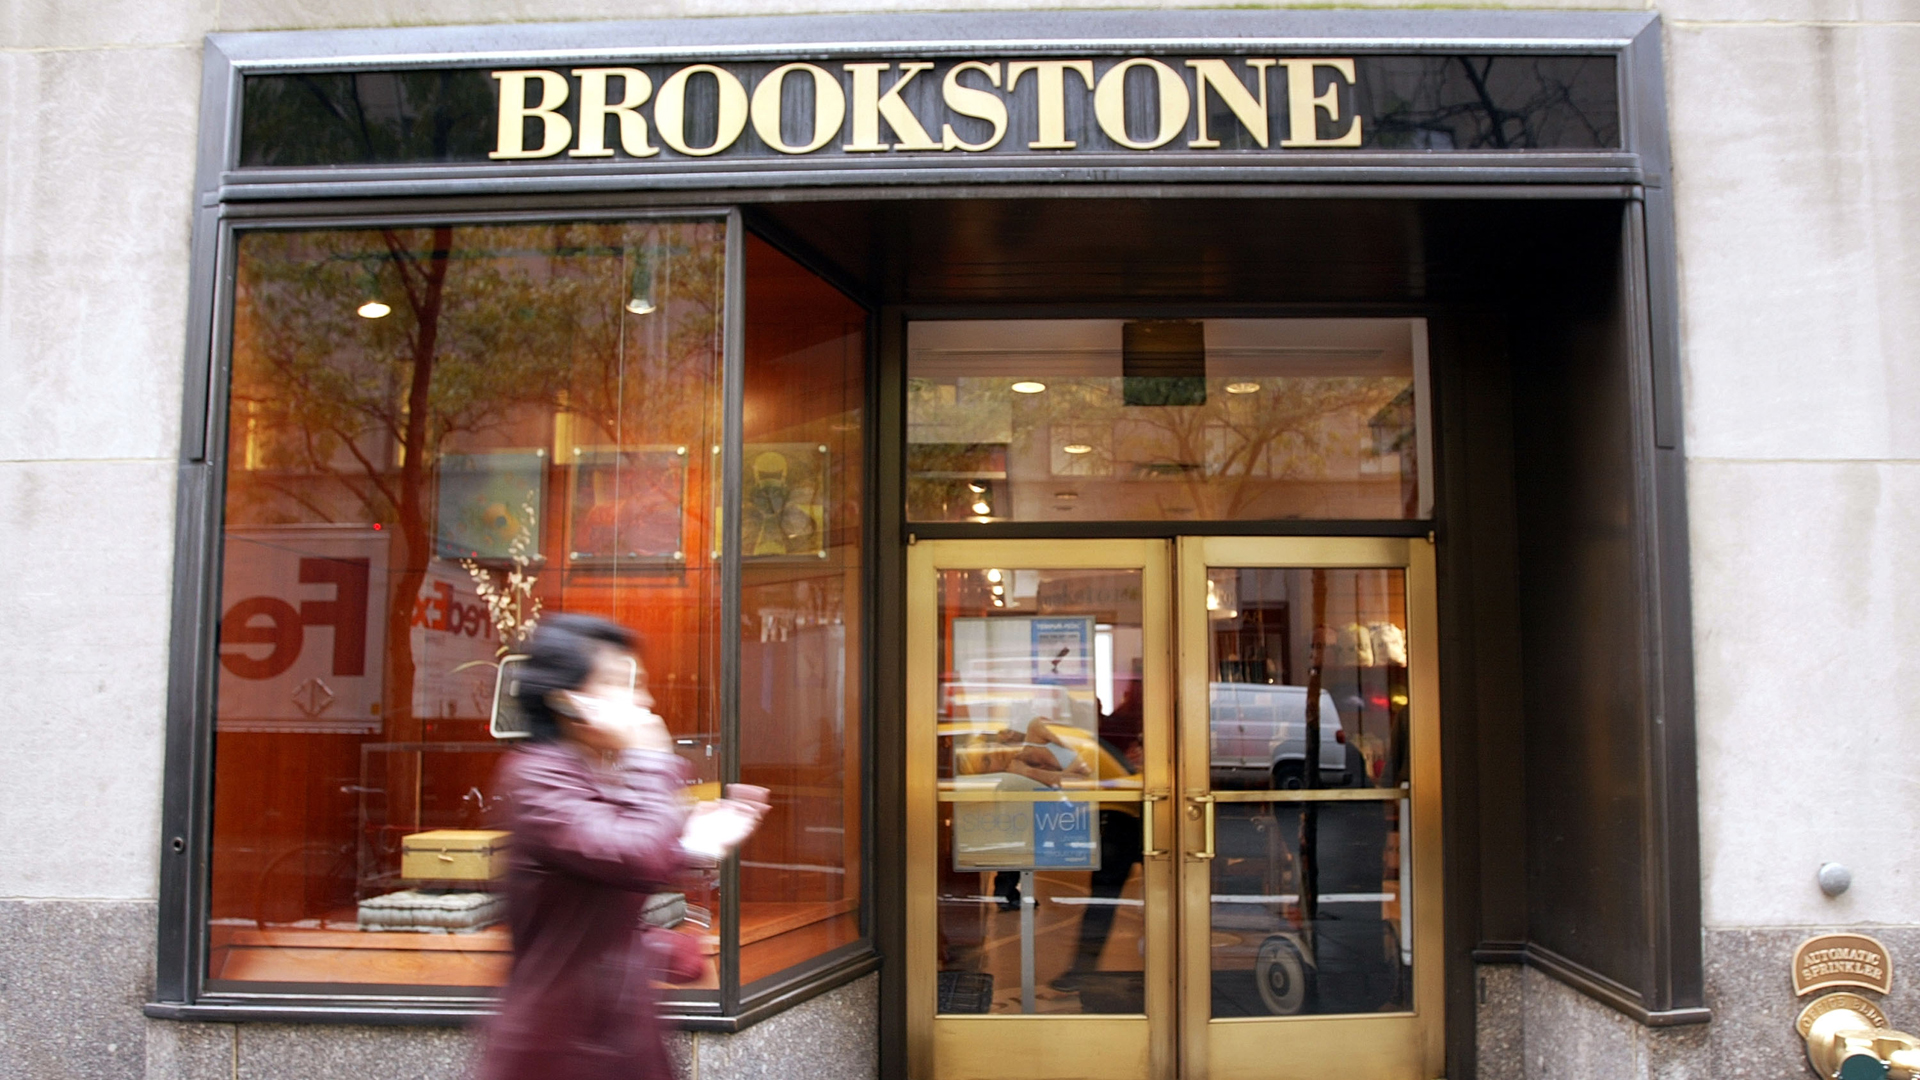 A Brookstone store is seen at Rockefeller Center October 29, 2003 in New York City. (Credit: Mario Tama/Getty Images)